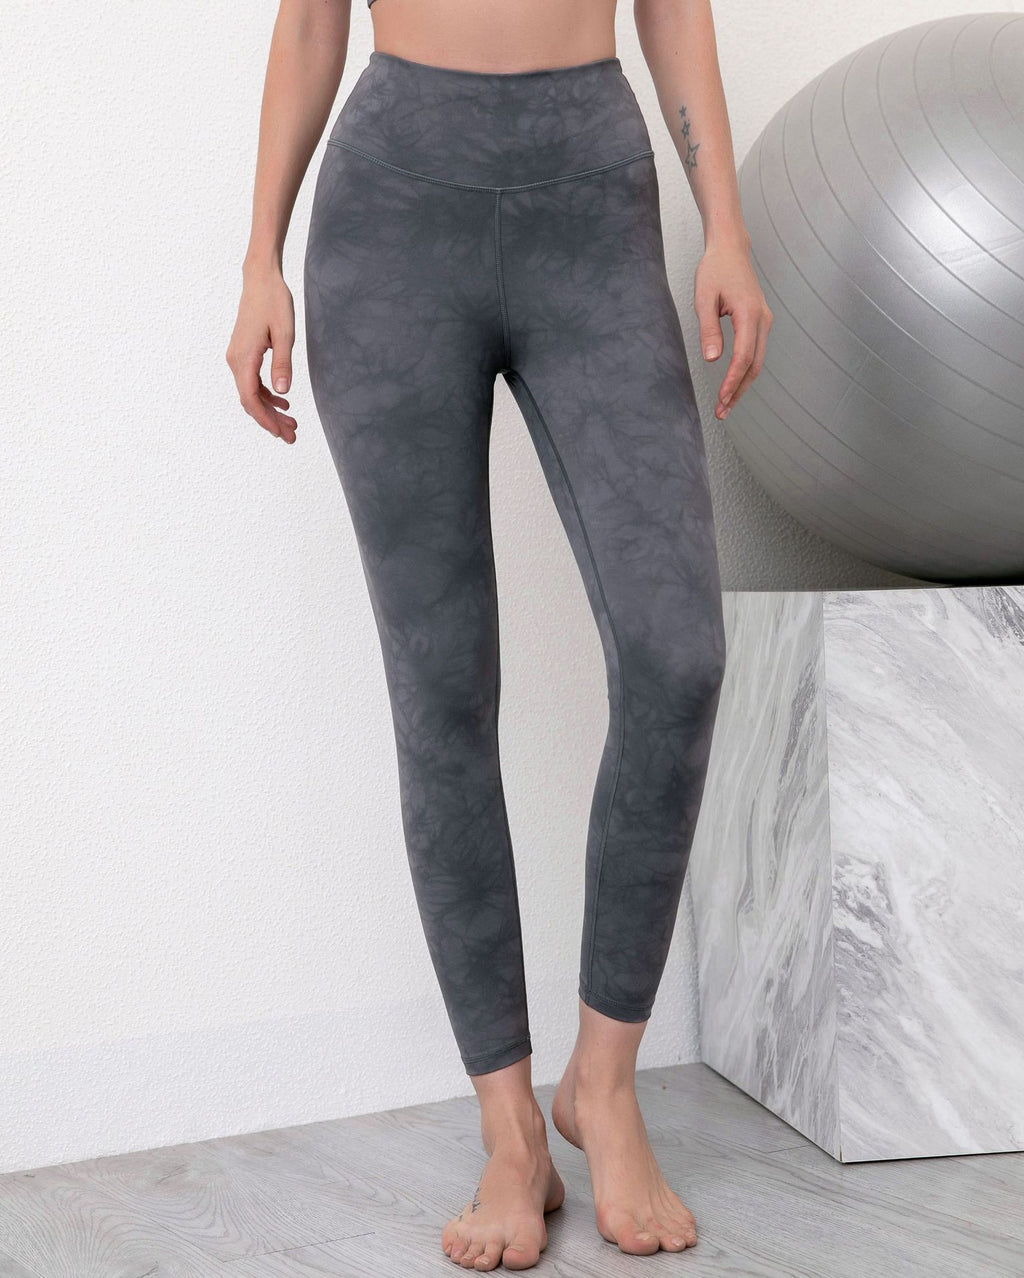 Astoria LUXE CLOUD Scrunch Legging - Charcoal